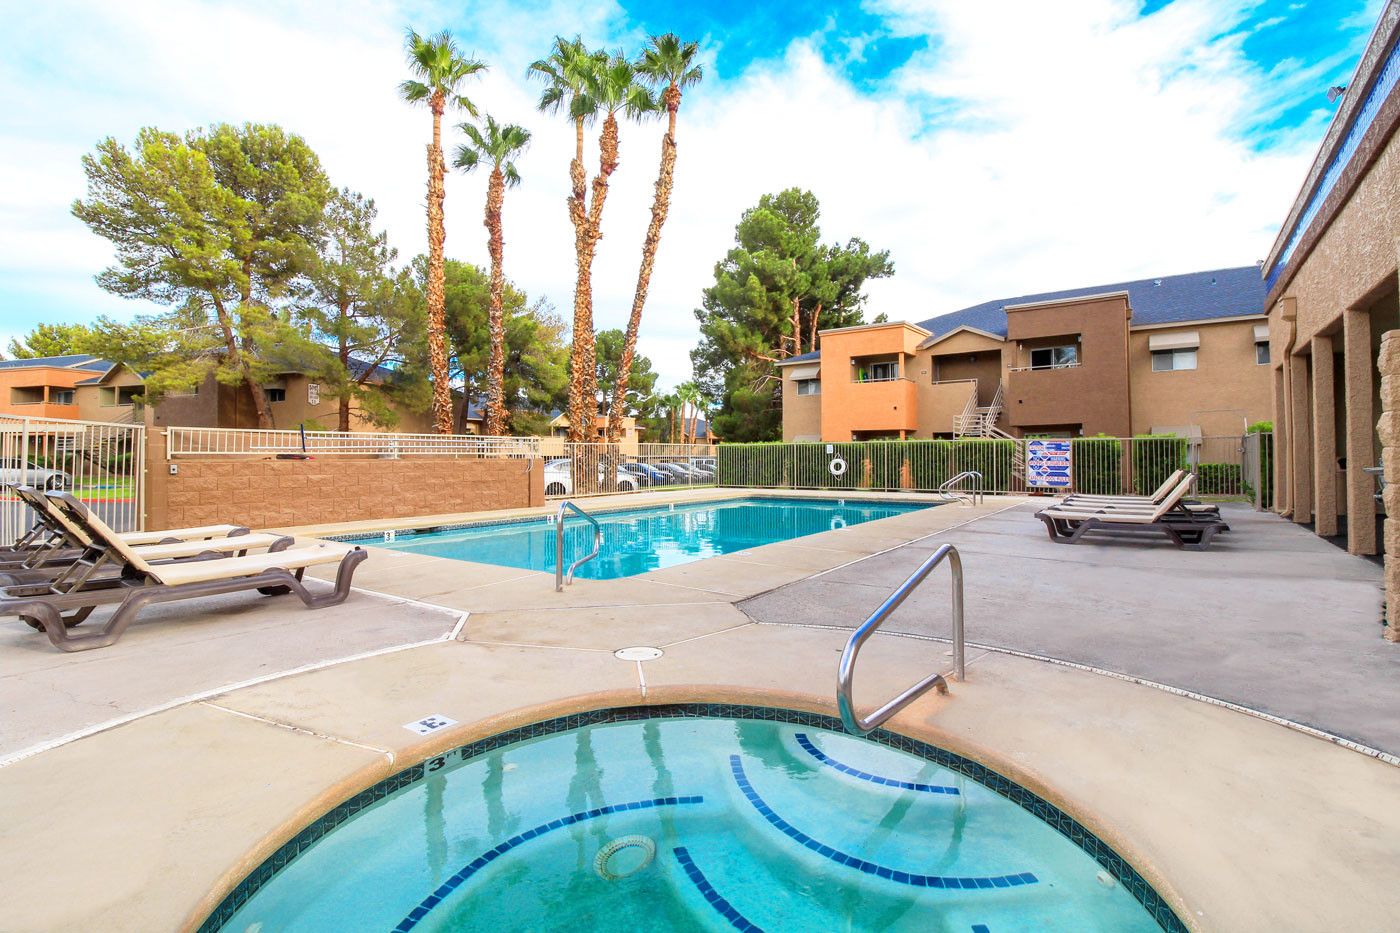 Outdoor pool at Silver Stream Apartments.